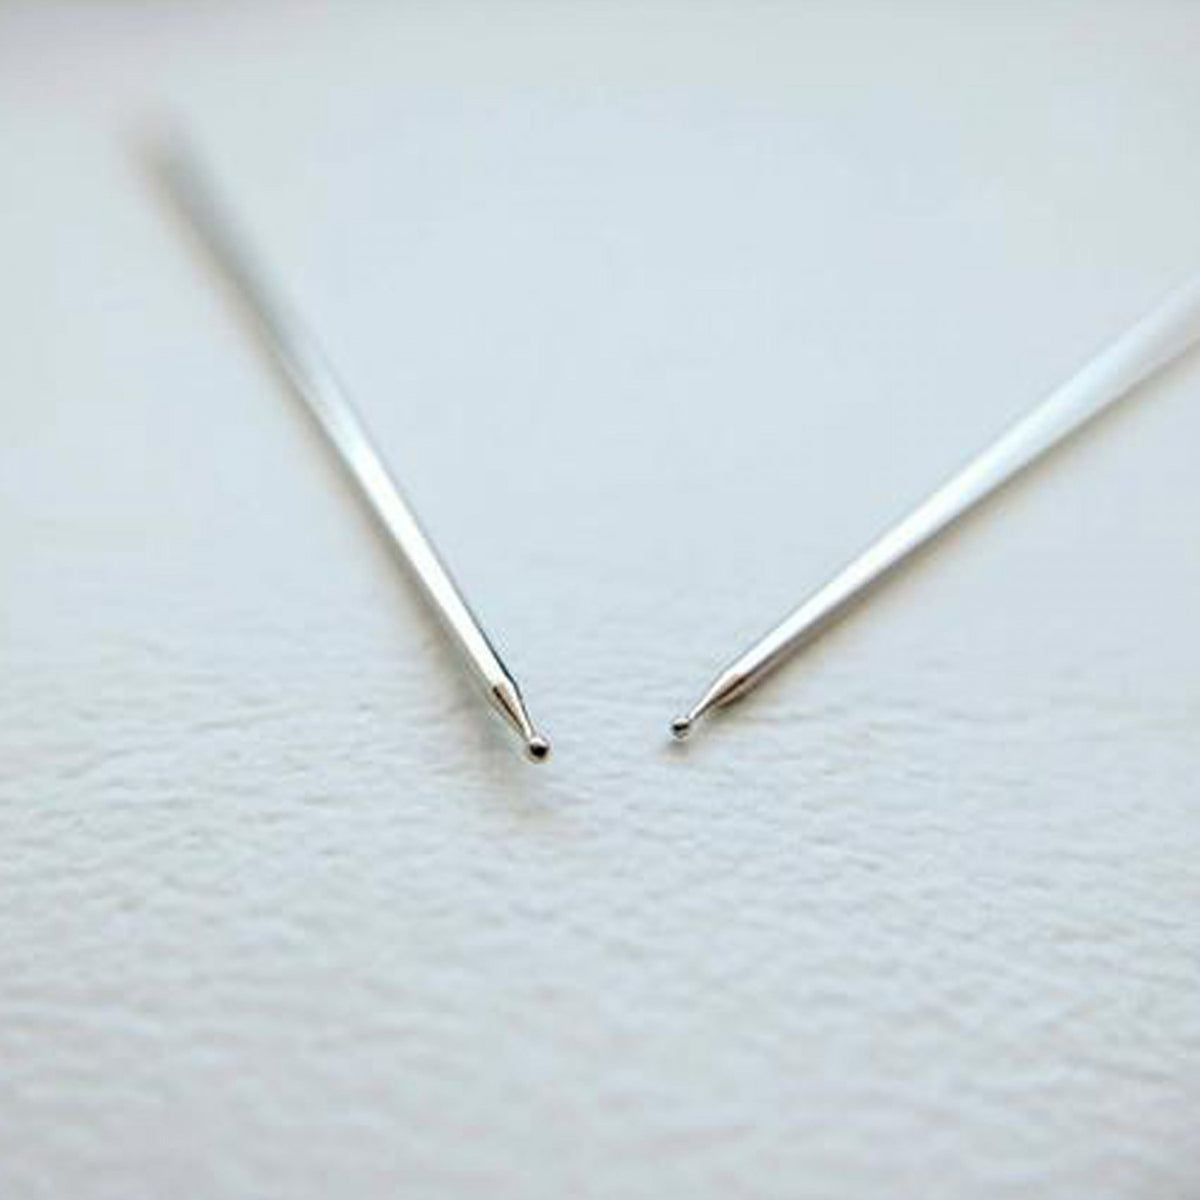 Easy Guide Ball-Tip Needles for Cross Stitch